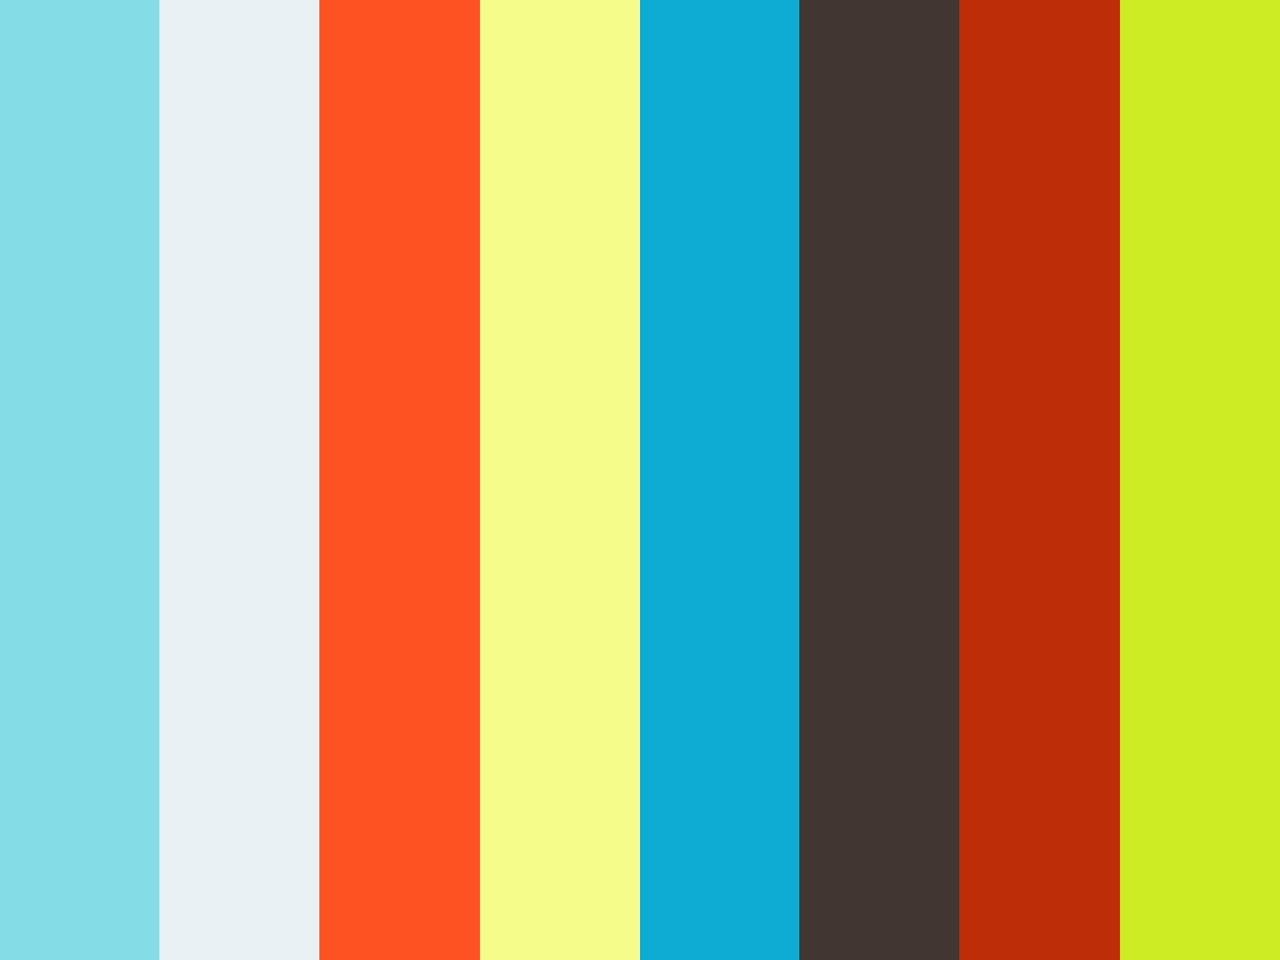 Skating in Central Park - J and Todd Dec 2005